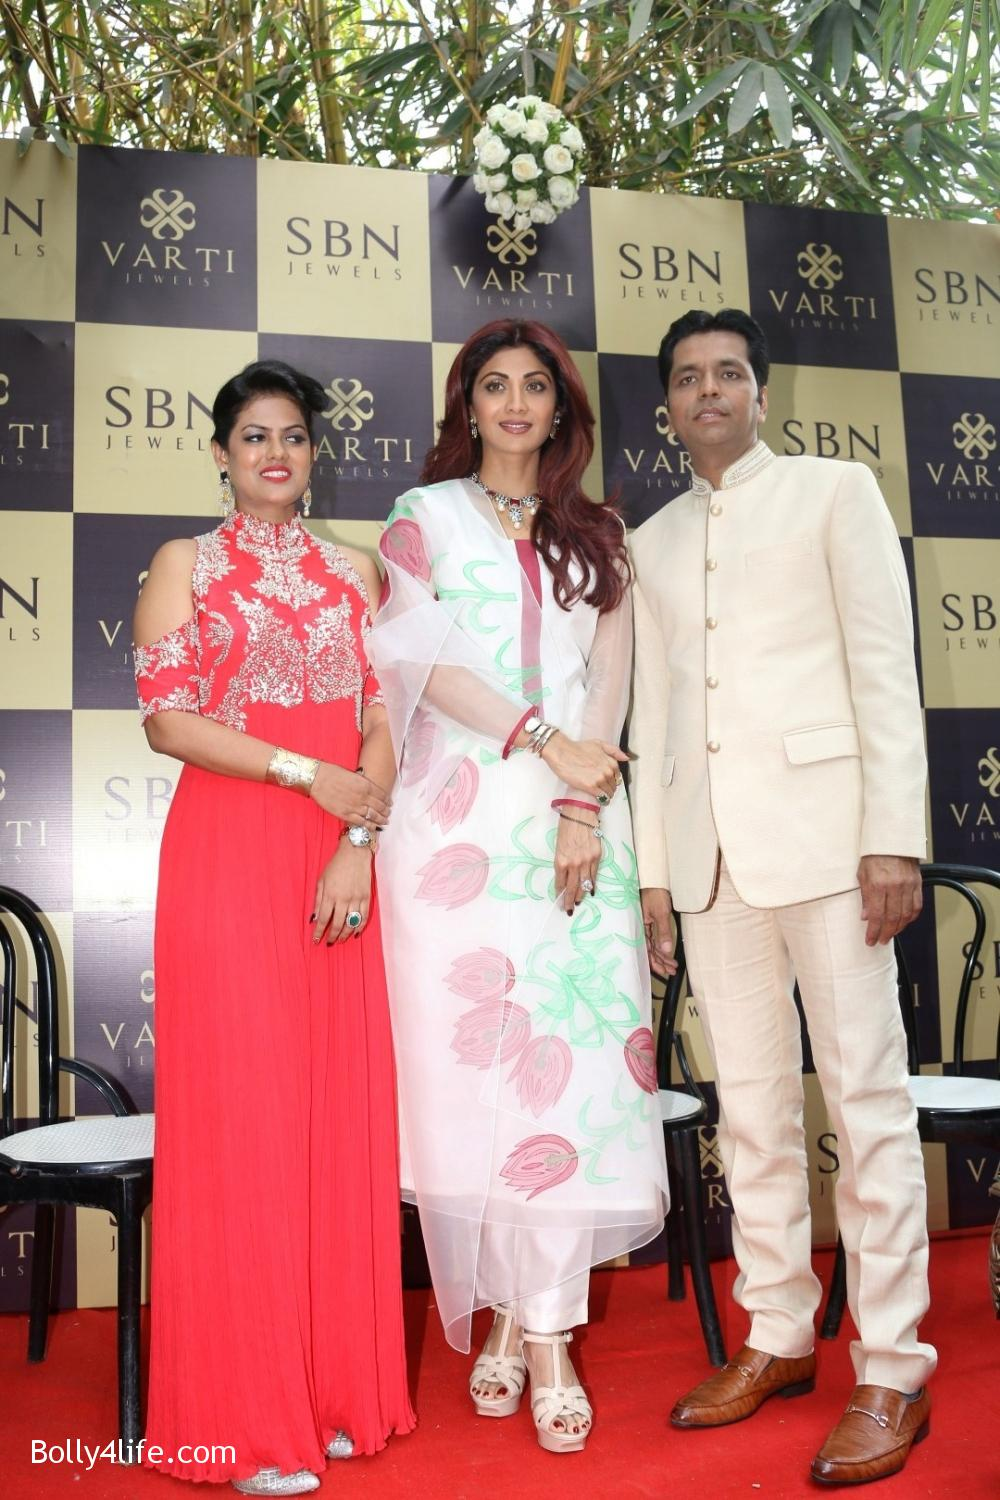 Shilpa-Shetty-inaugurates-jewellery-showroom-of-Varti-Jewells-2.jpg